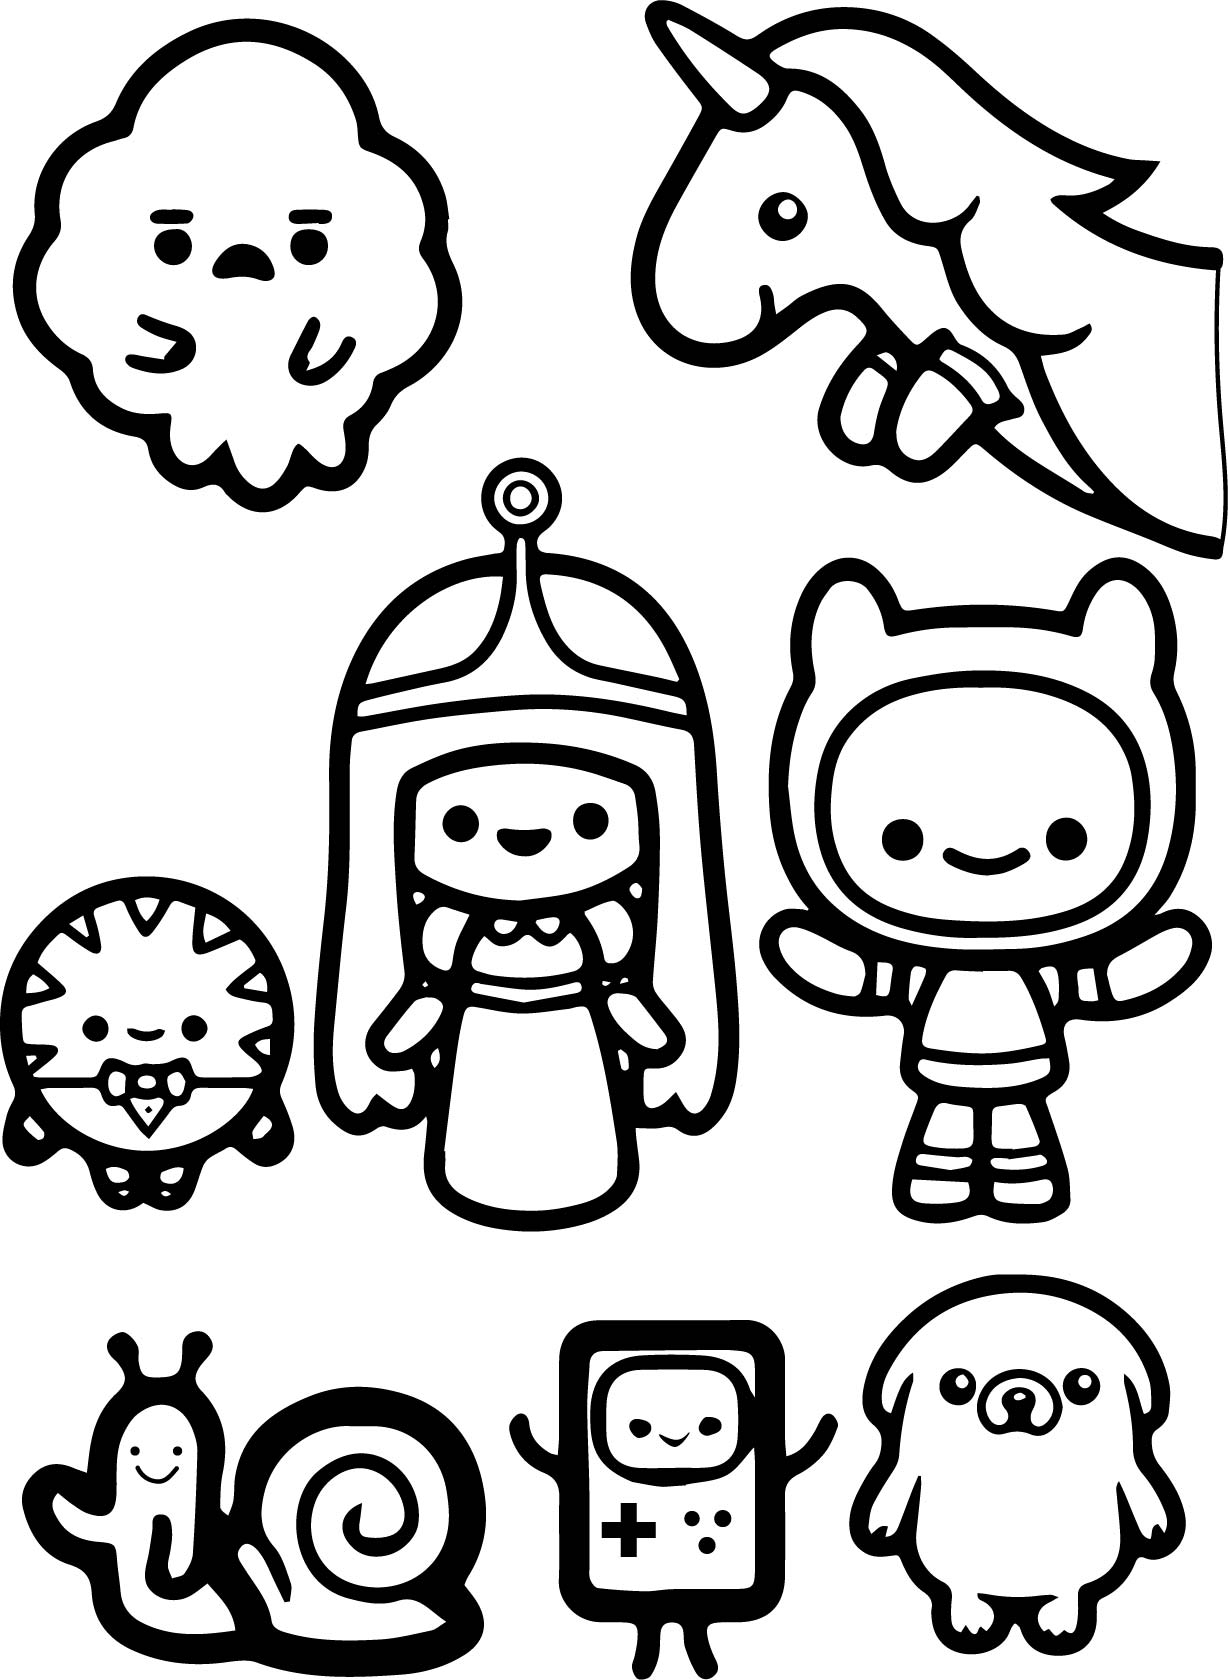 Adventure Time Finn And Jack Child Coloring Page Wecoloringpage